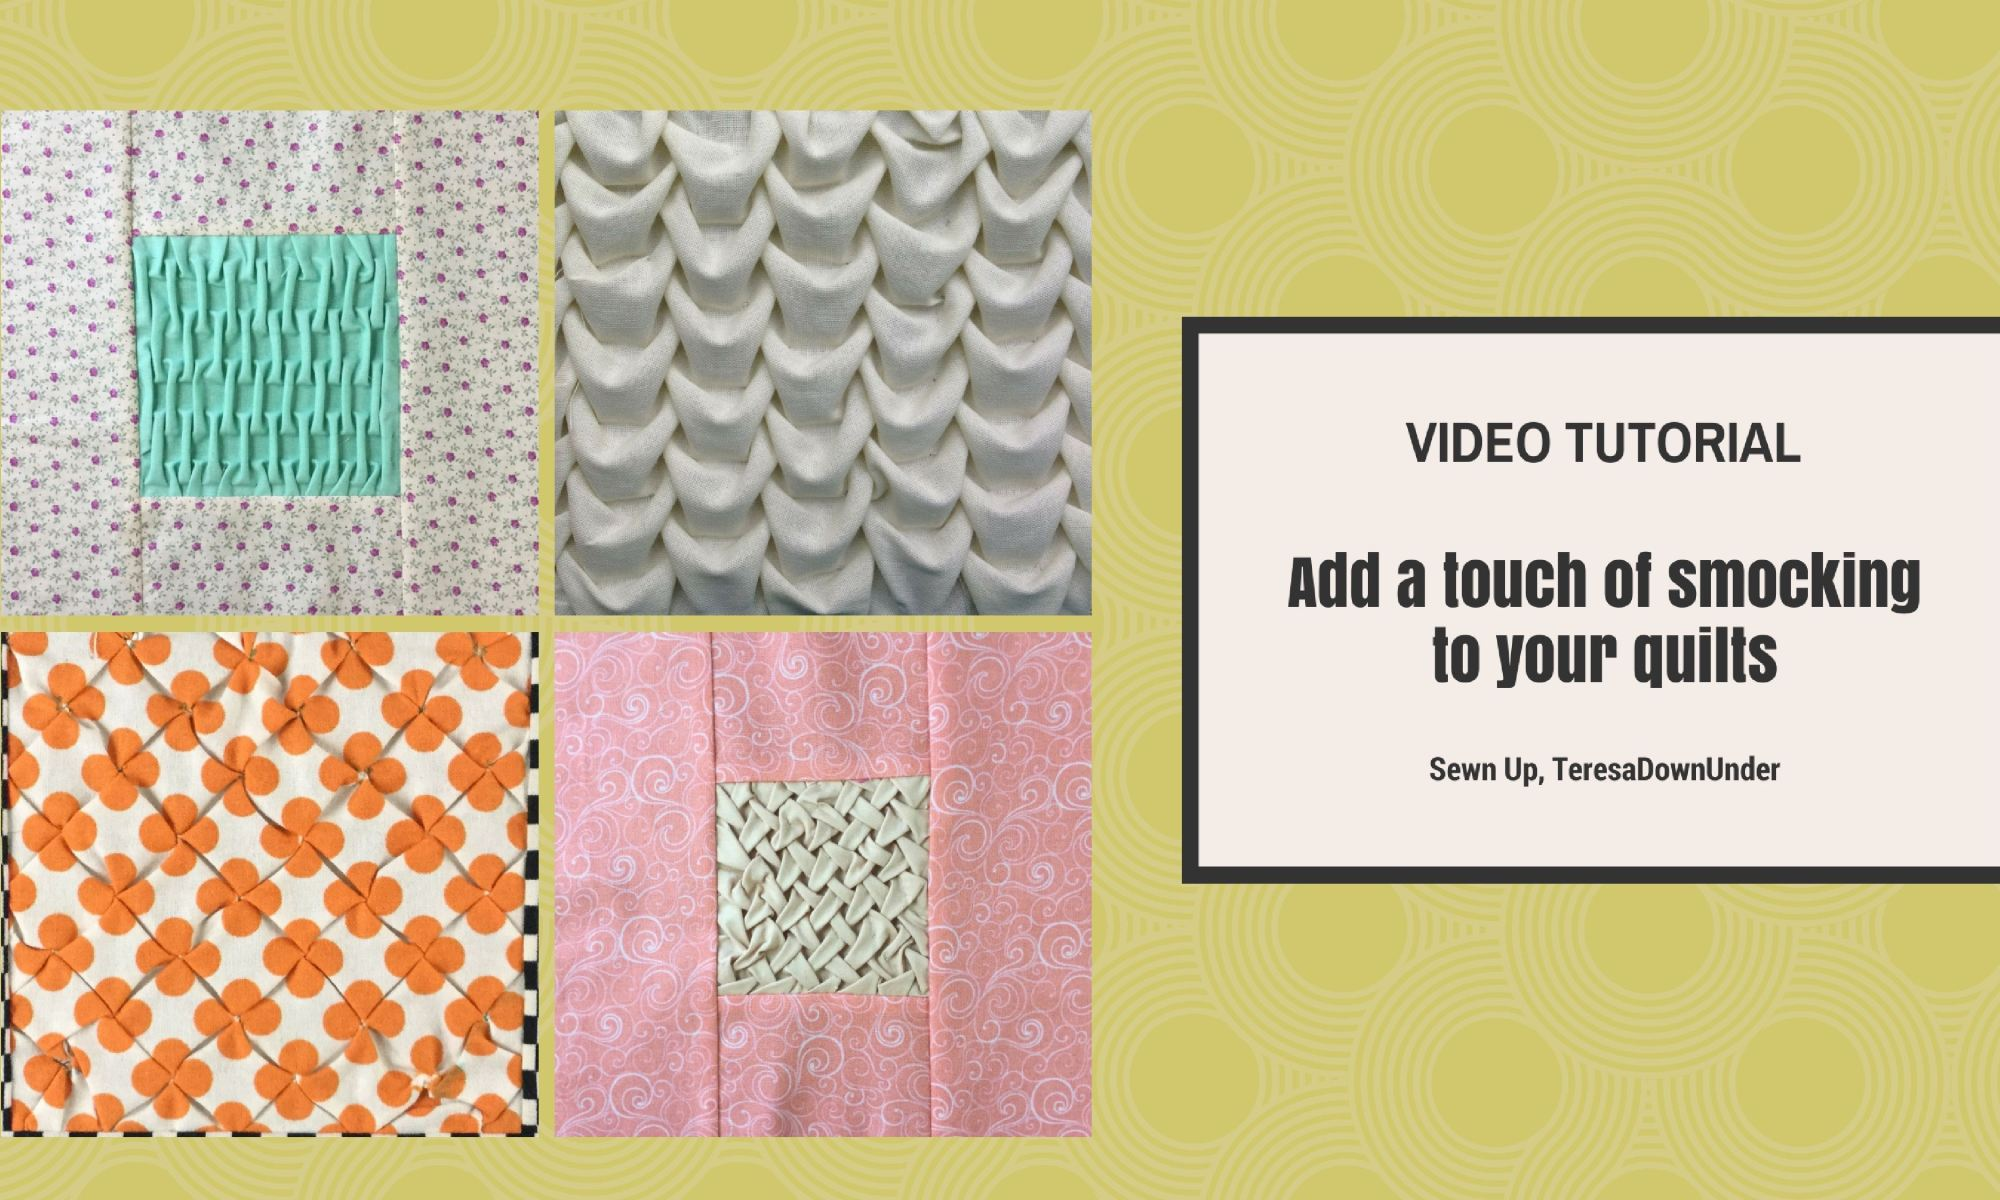 Video tutorial: Add a touch of smocking to your quilts - 4 easy fabric manipulation tutorials